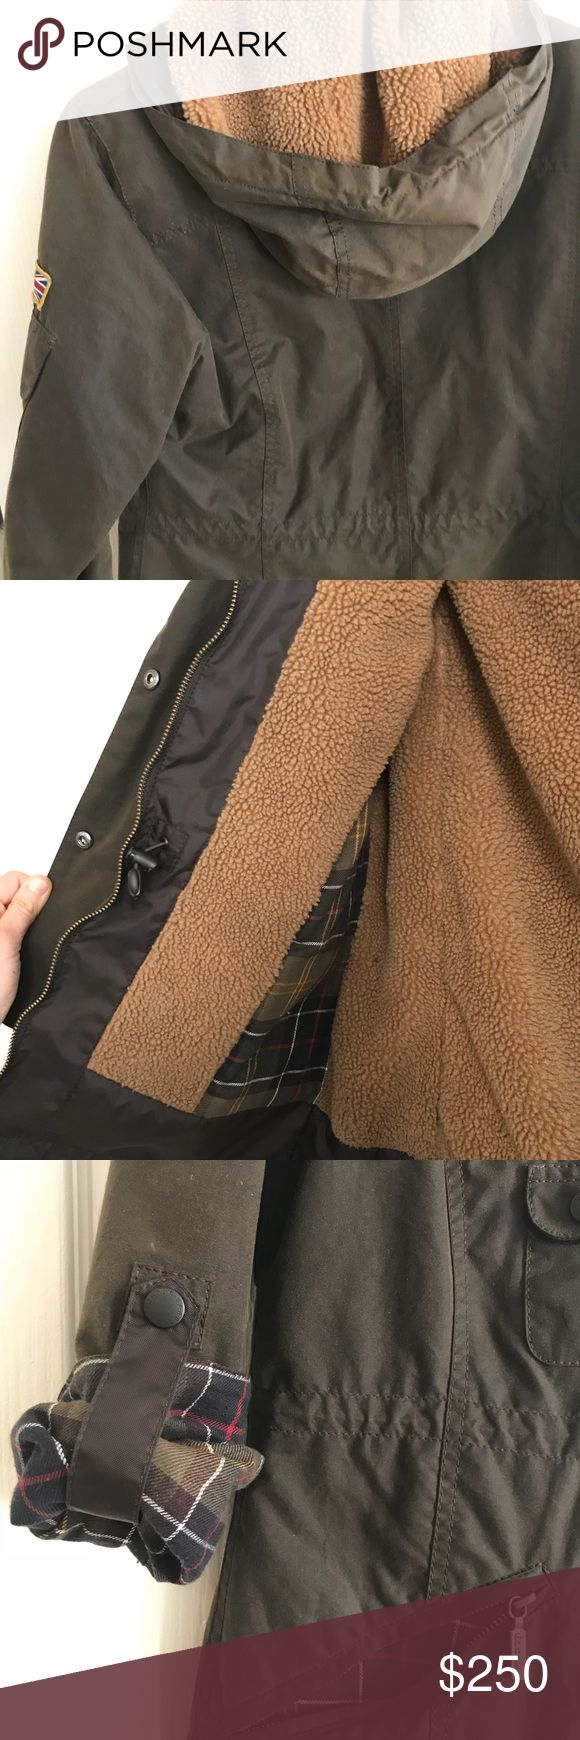 Barbour Coat with Shearling Interior UK 8/US 4